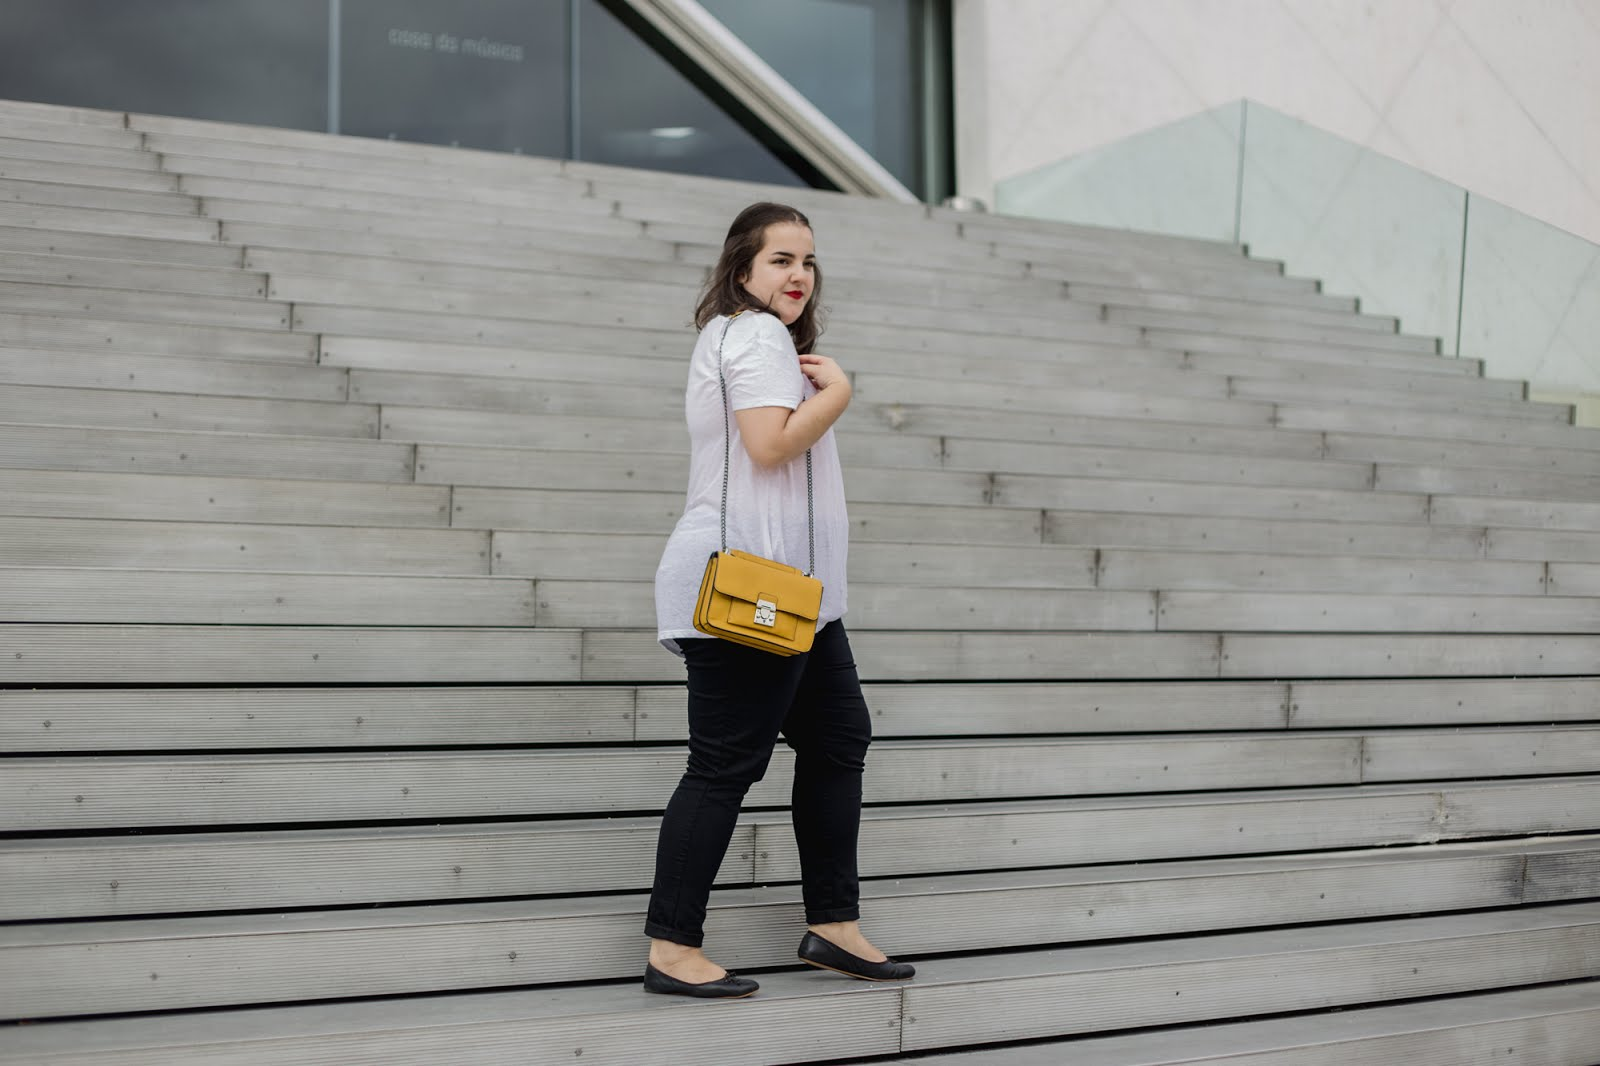 Outfit of the day - White t-shirt, jeans and a mustard yellow bag